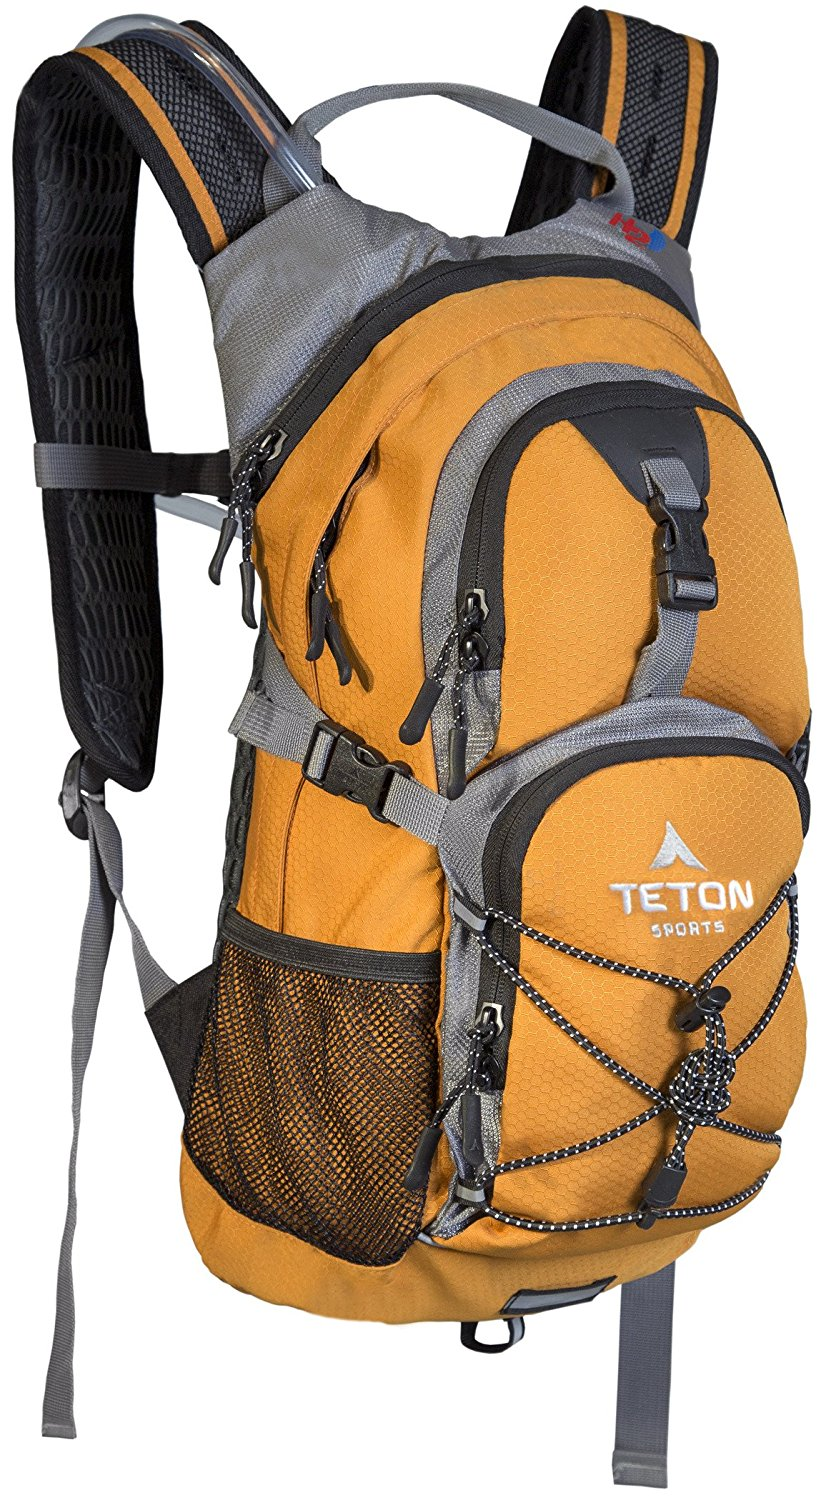 teton sports, hiking, backpack, camping